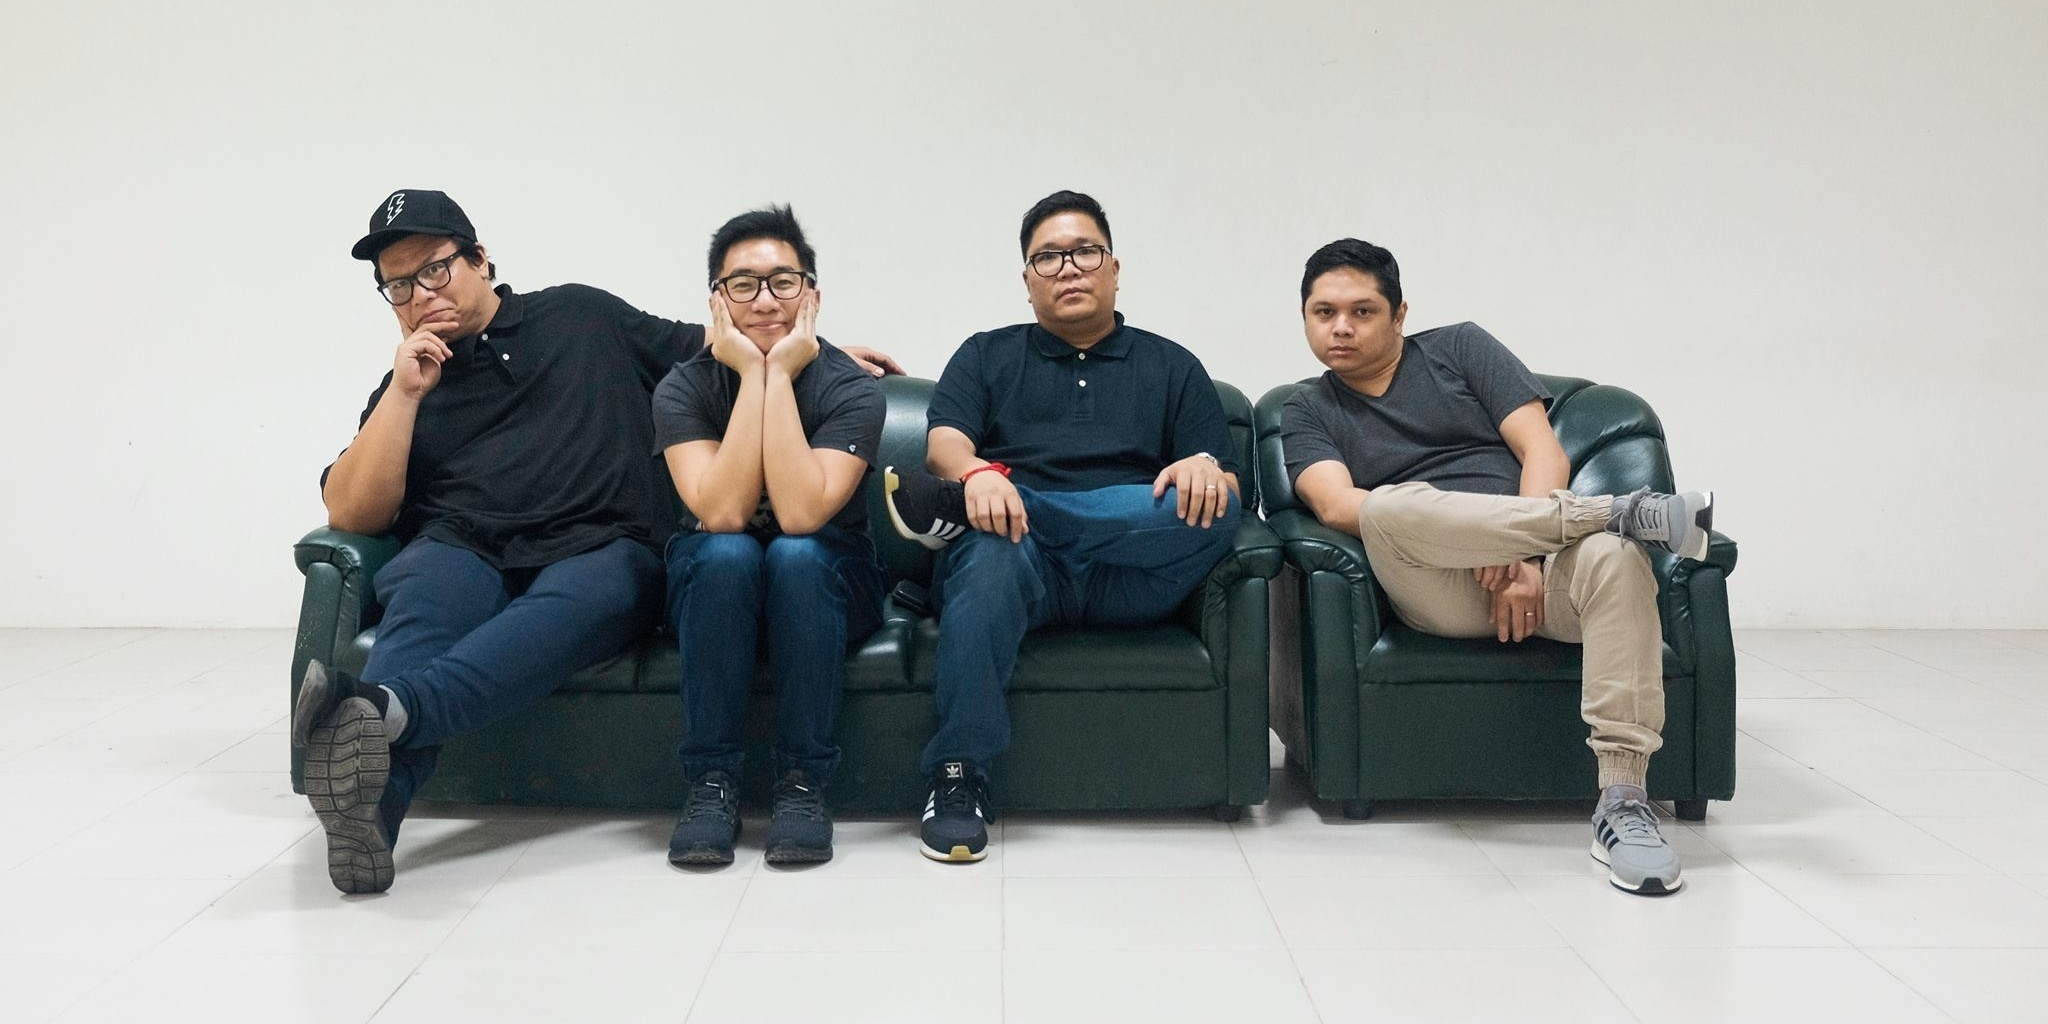 """""""We've been secretly recording songs during quarantine"""": The Itchyworms on new single 'The Silence' – listen"""